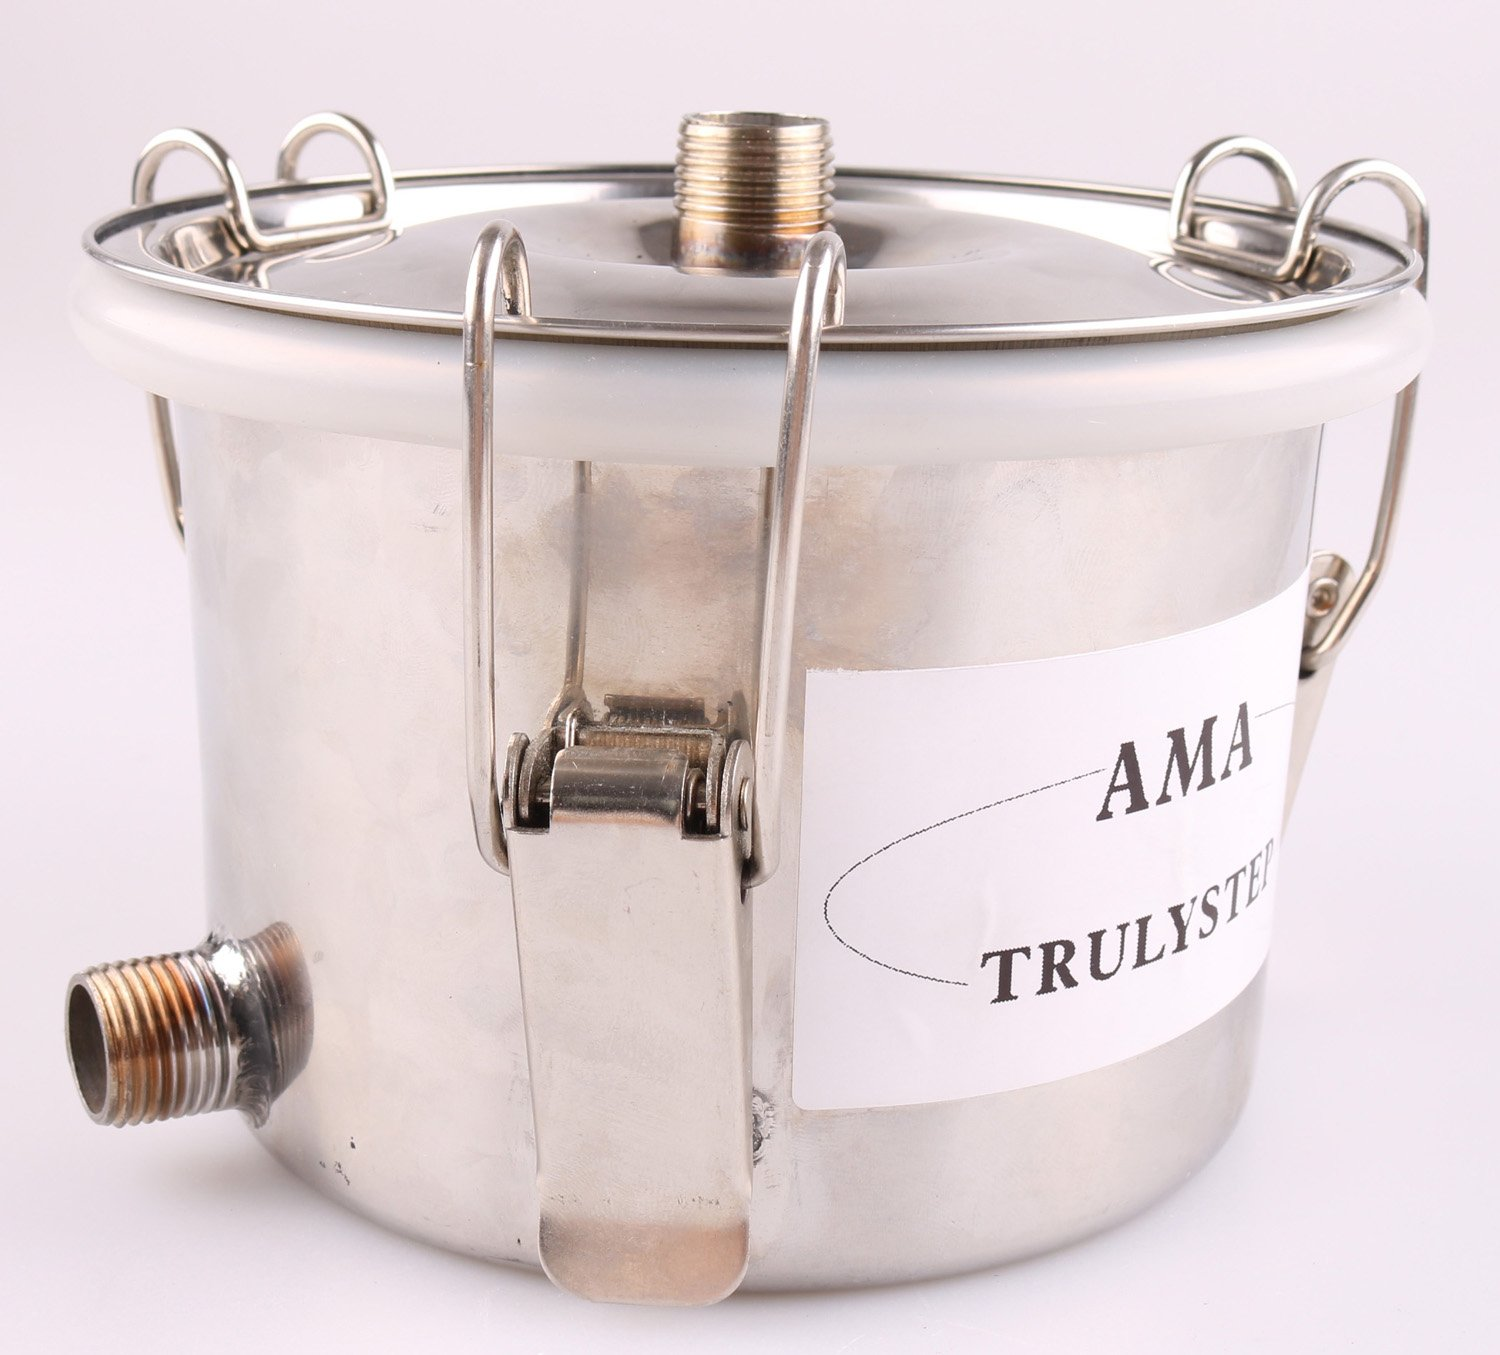 Spare Parts for 3 Pots Moonshine Still / Distiller / Brewing Kit: Stainless Middle / Spice / Fruit Pot & Bellows Pipes (fit 2 Gallon 10 Litres Distiller) WMN_TRULYSTEP MS_PARTS06